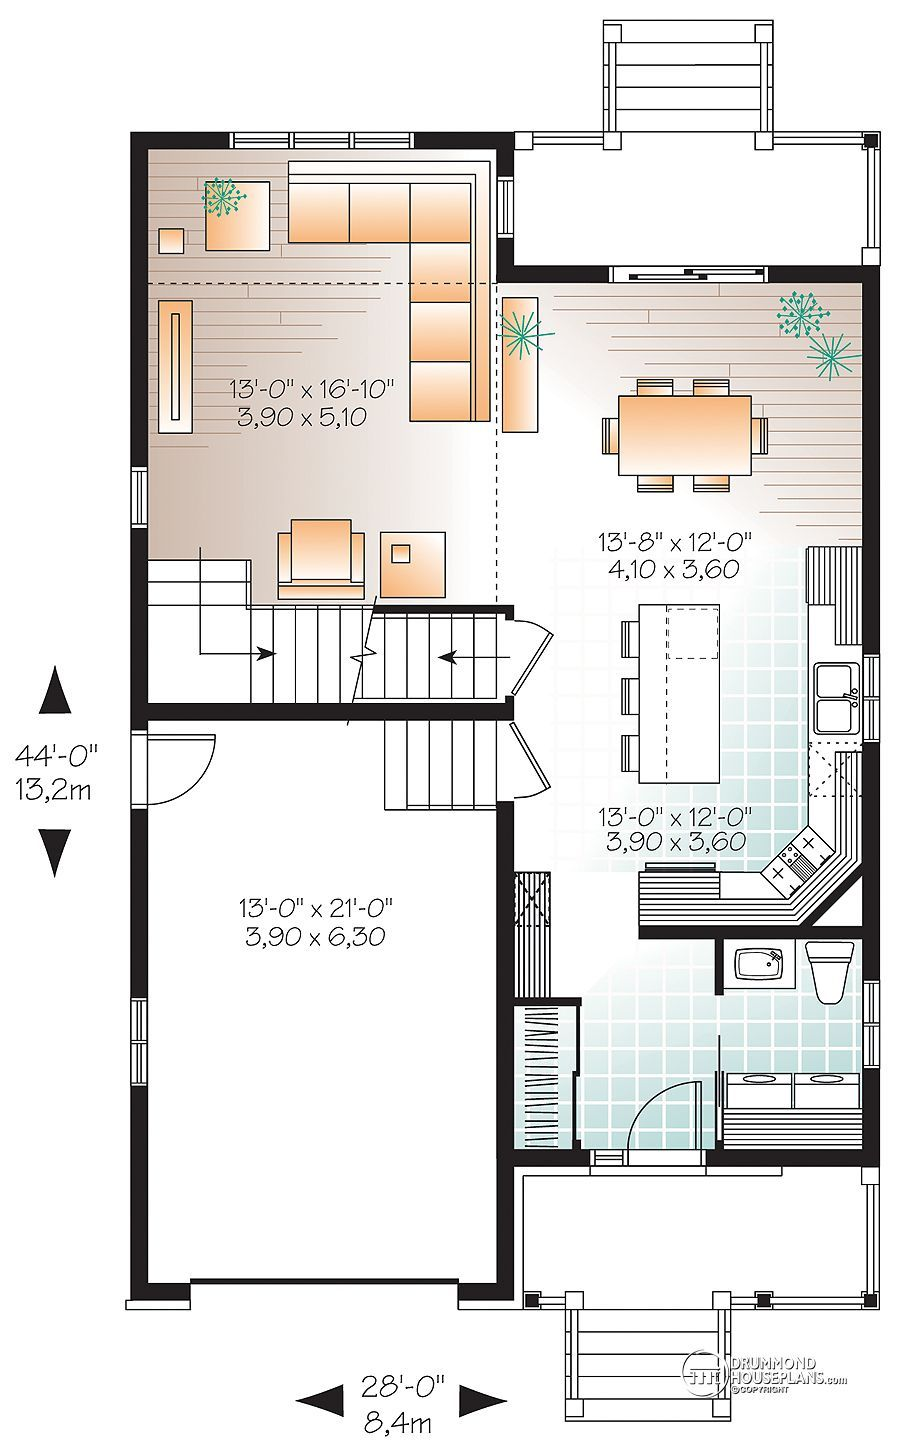 4 master bedroom house plans  House plan W detail from DrummondHousePlans  small homes